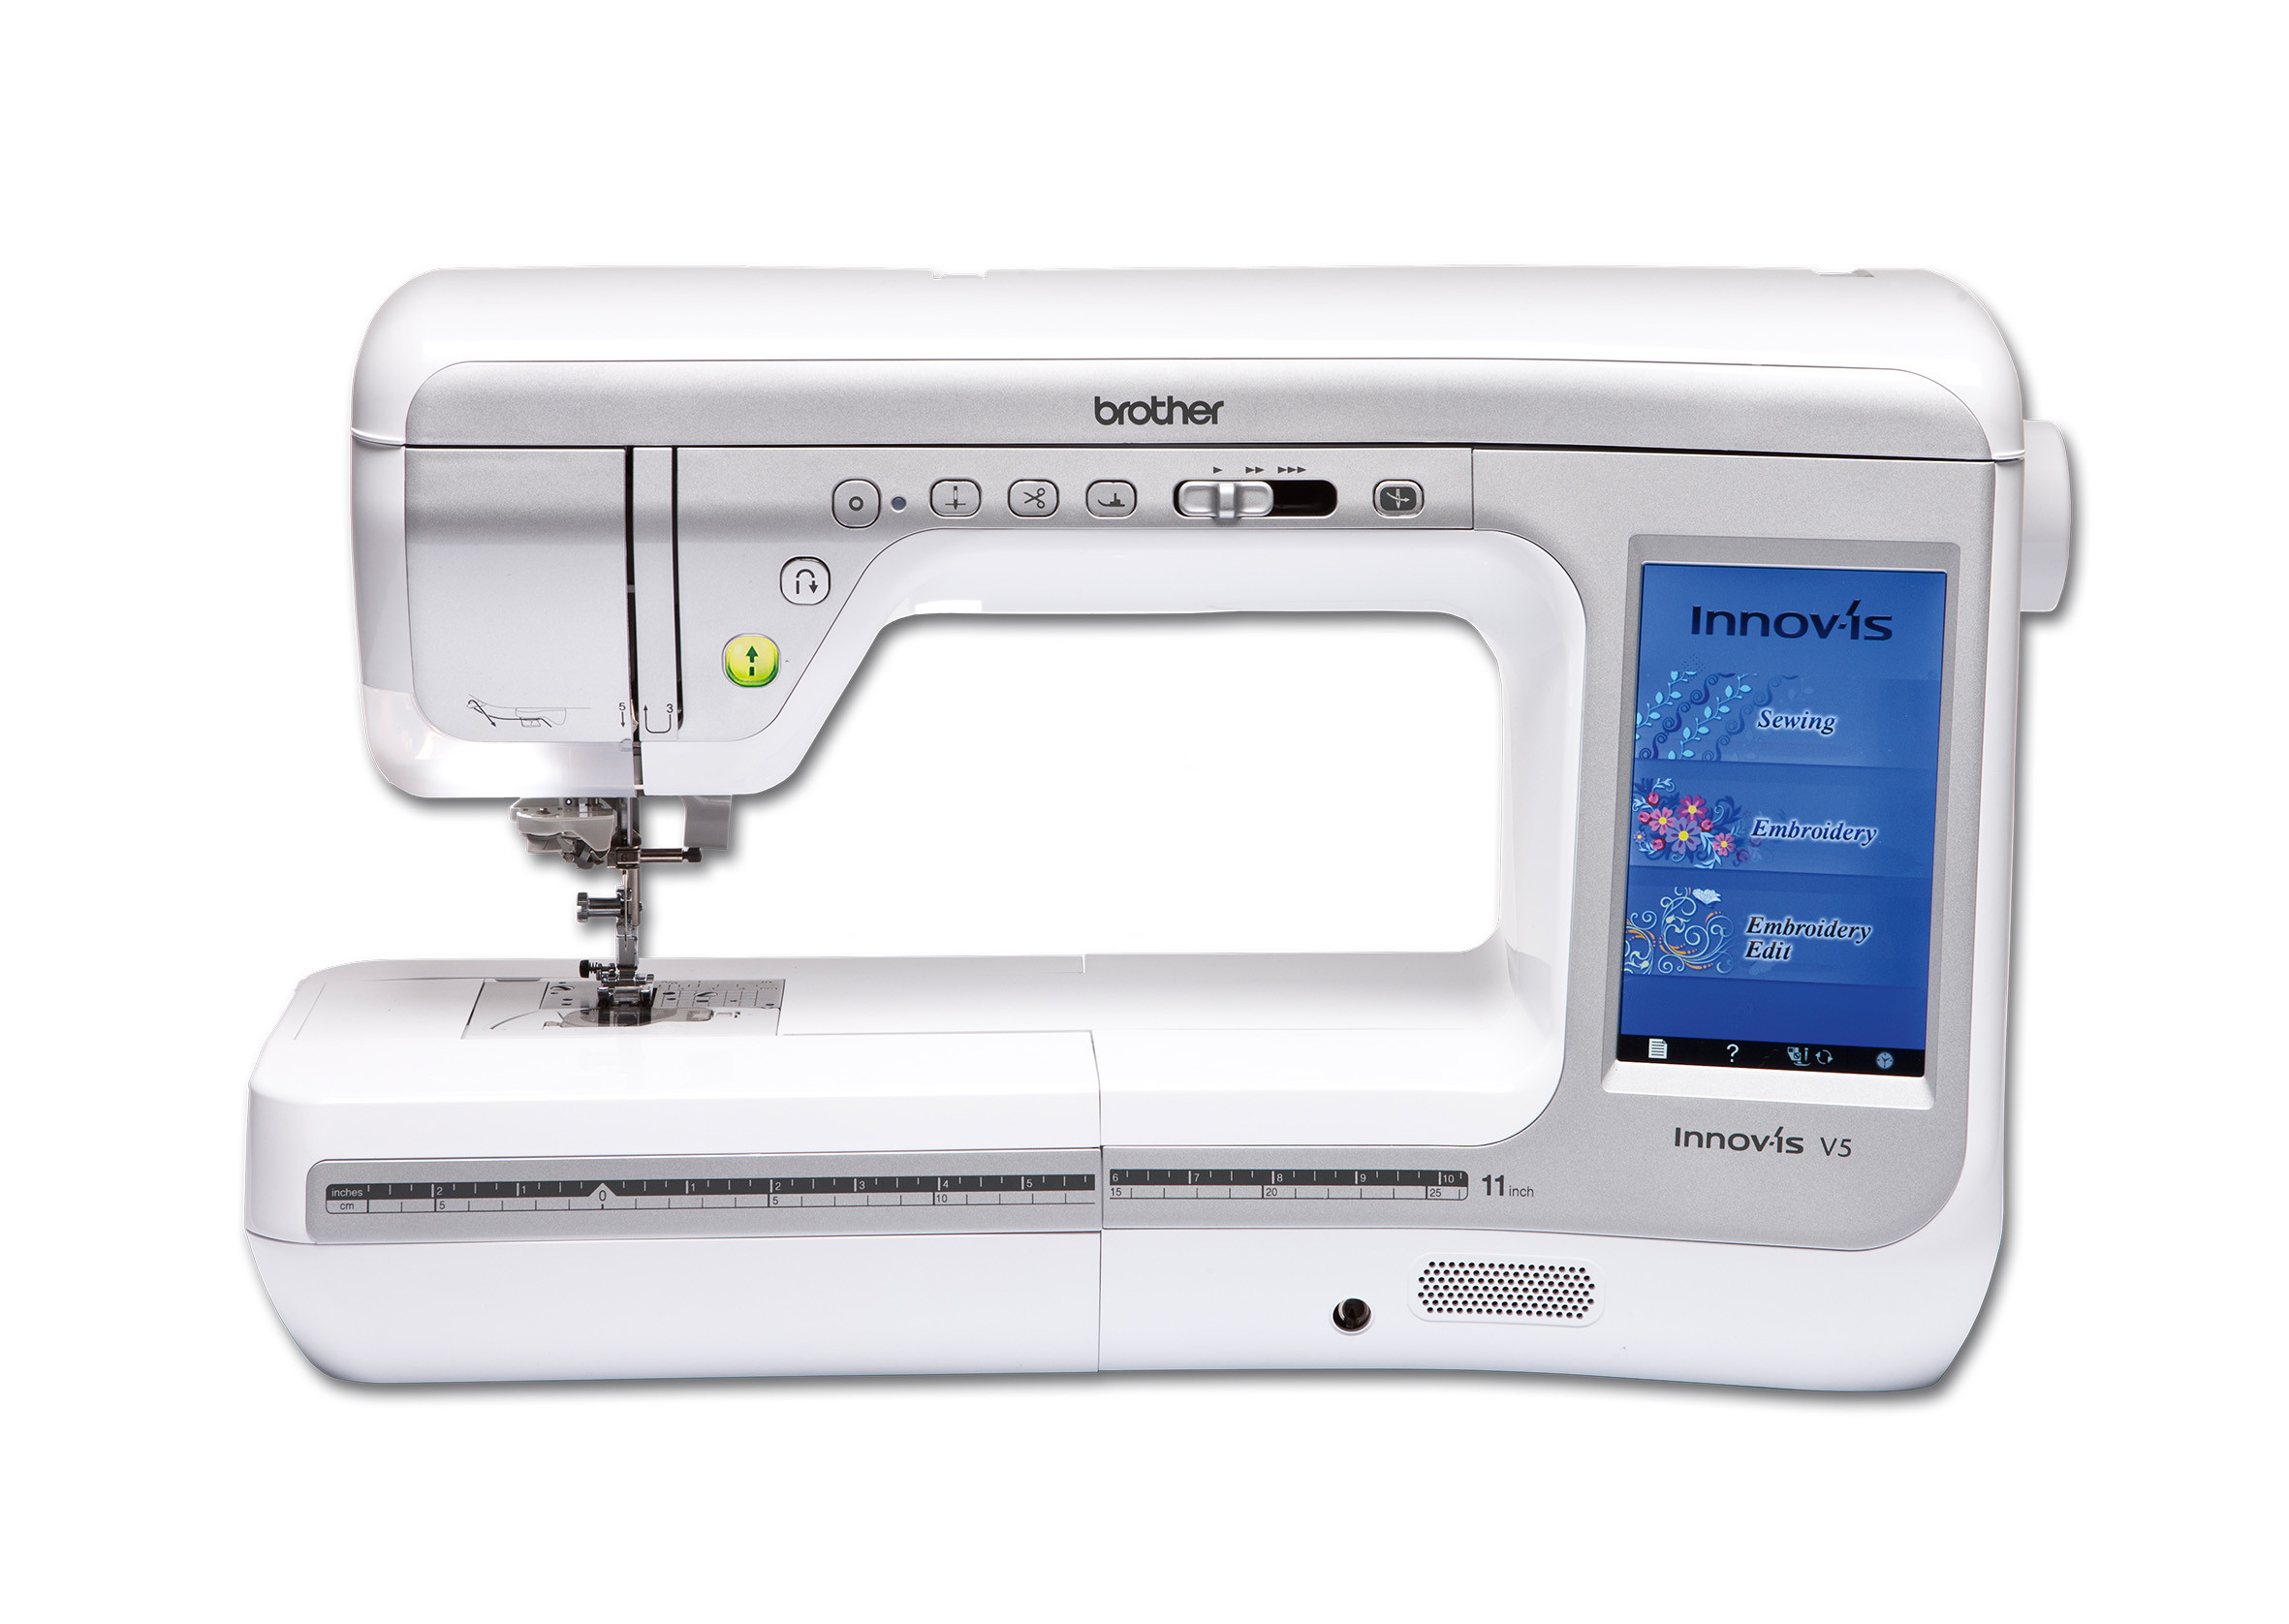 Embroidery Machine Fresh Brother Innov is V5 Brother Sew Pare Sewing Shop Of Innovative 43 Pictures Embroidery Machine